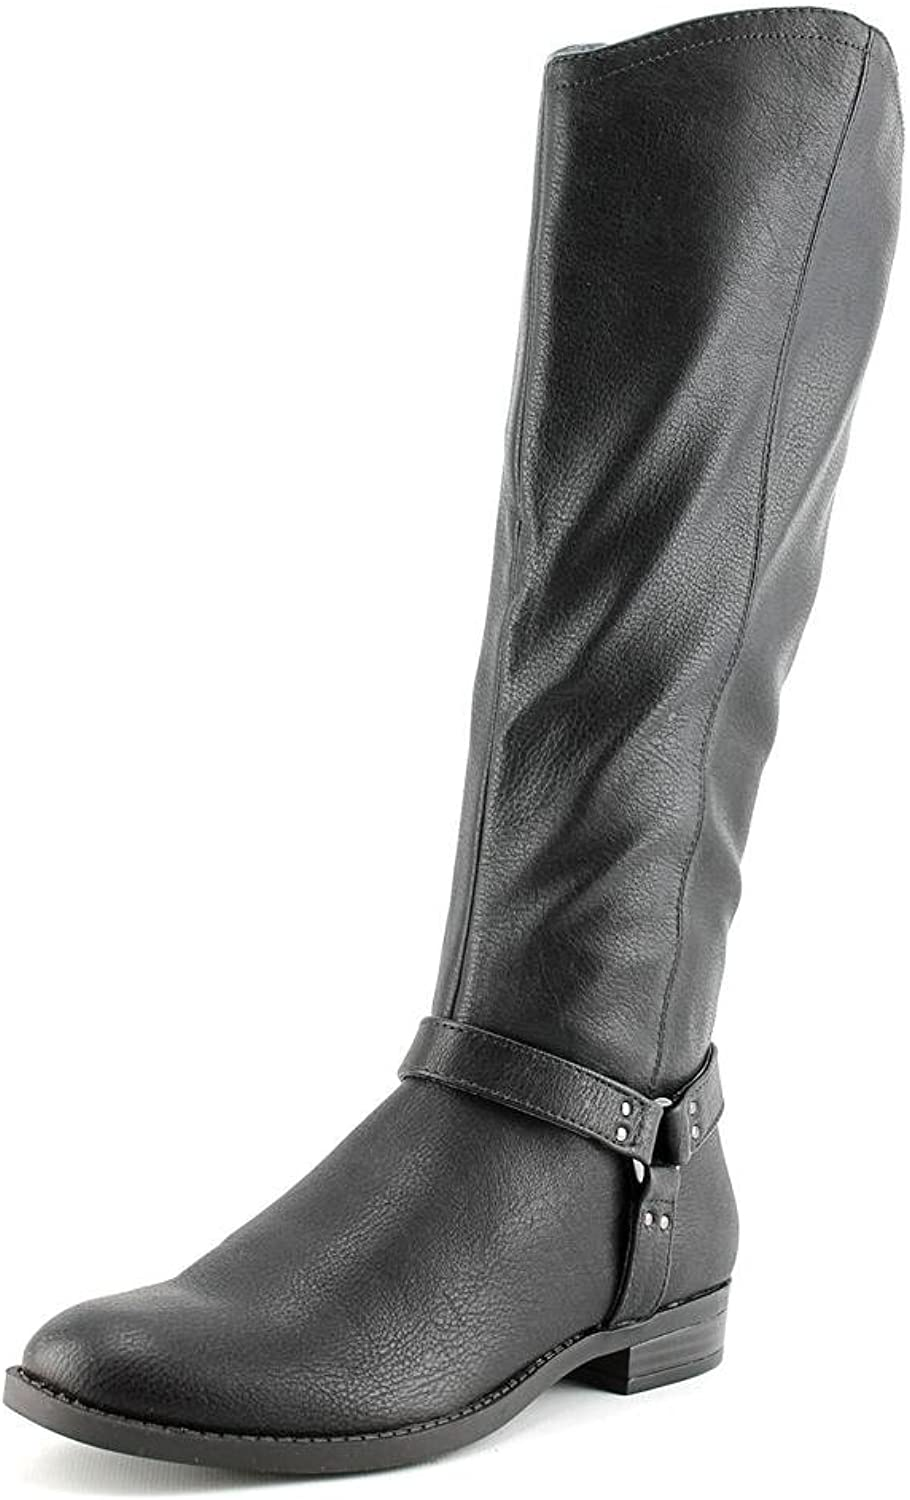 Style & Co.. Womens ALIX Closed Toe Mid-Calf Fashion Boots, Black, Size 8.0